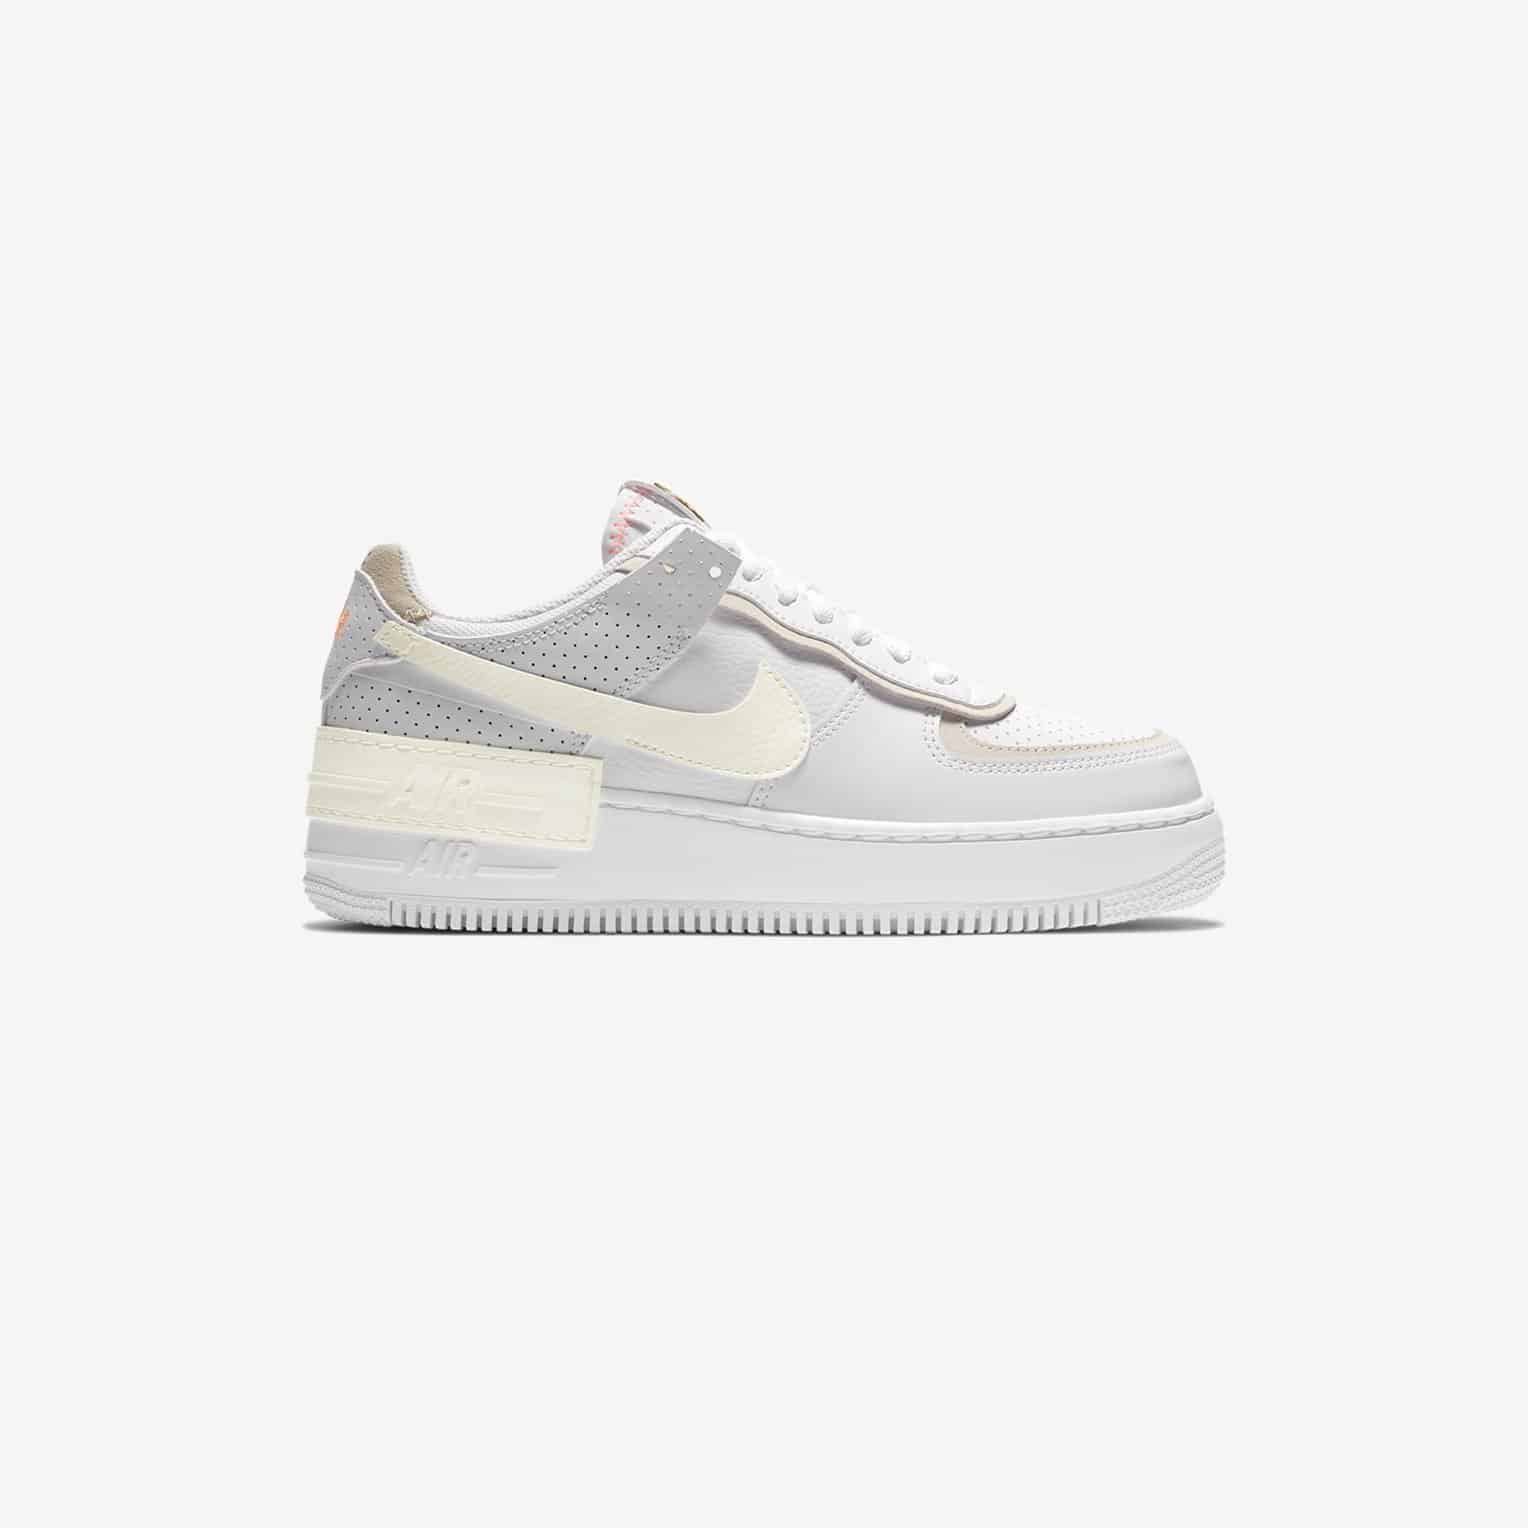 Nike Air Force 1 Shadow White Atomic Pink Neoteric Official Nike sportswear adds to their women's lineup with a brand new edition of the air force 1 shadow. nike air force 1 shadow white atomic